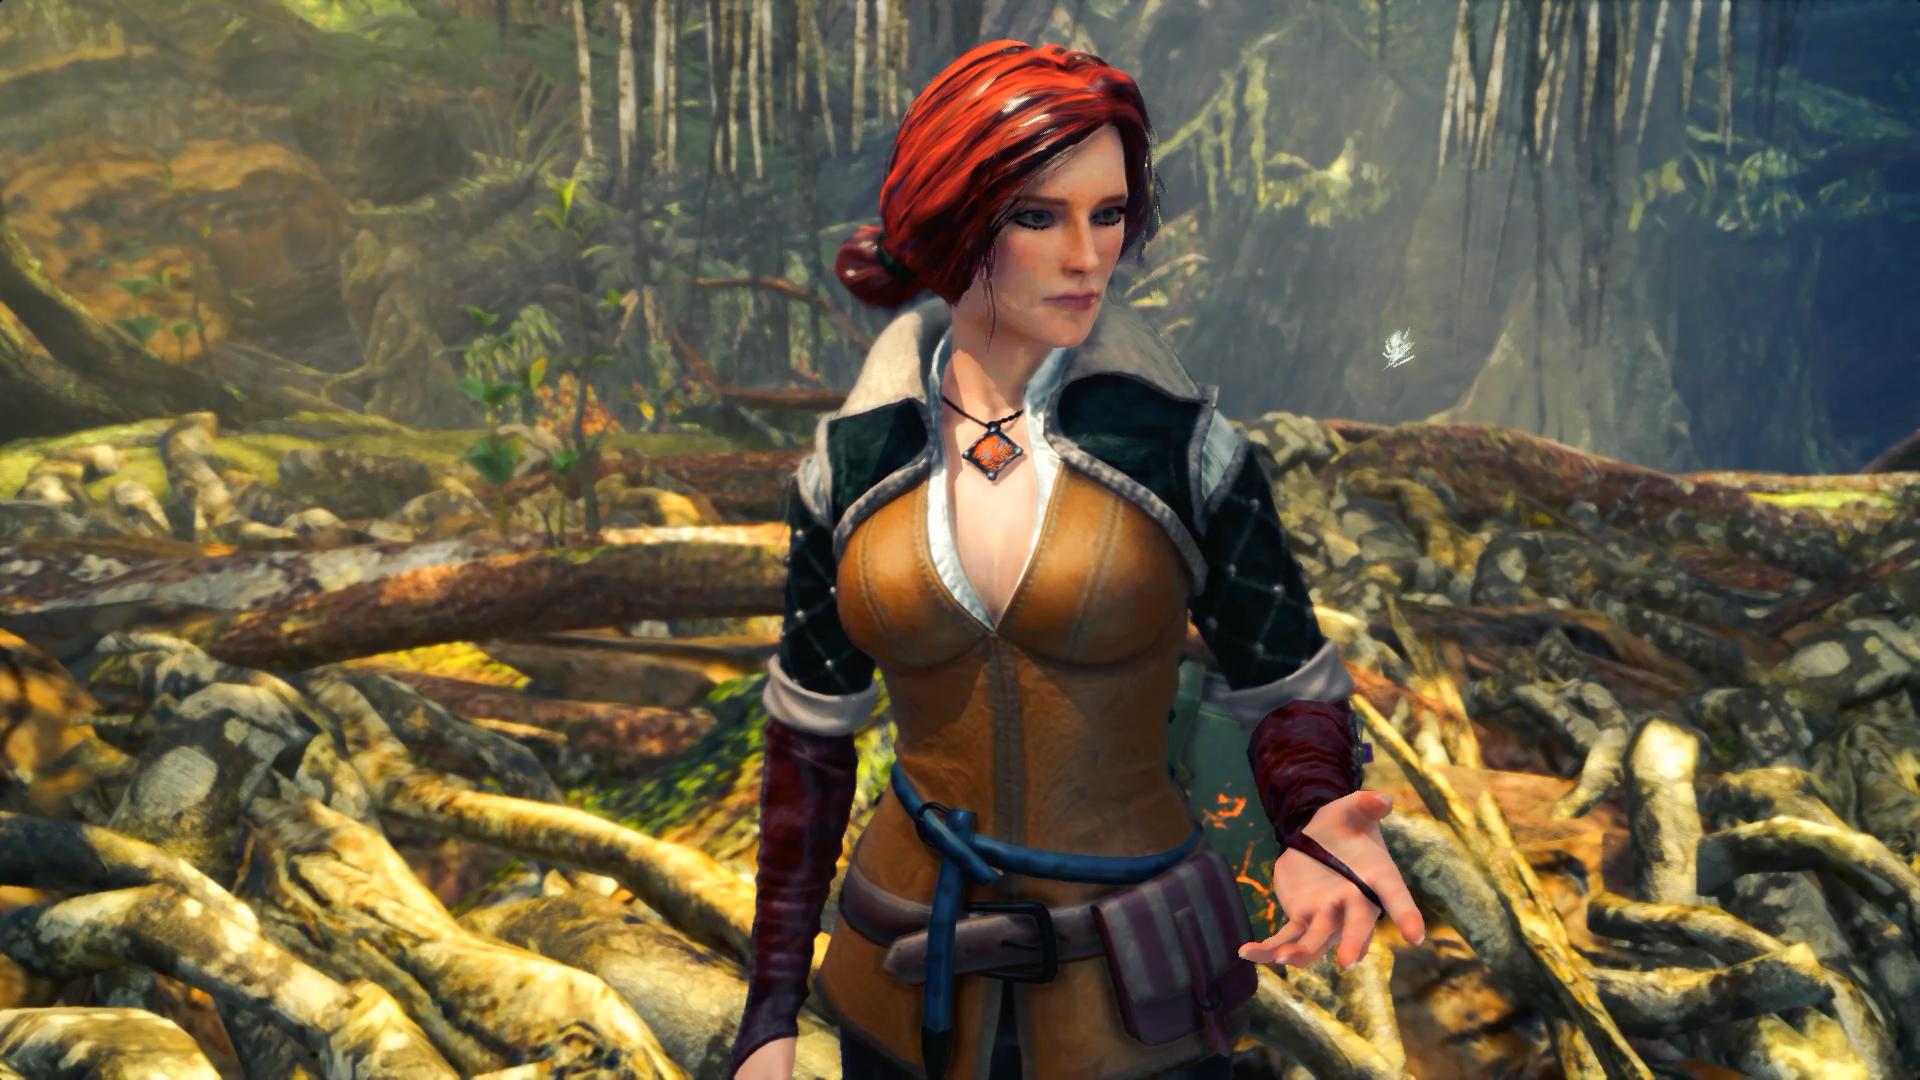 The Witcher: Fantastic Cosplay brings Triss Merigold to life